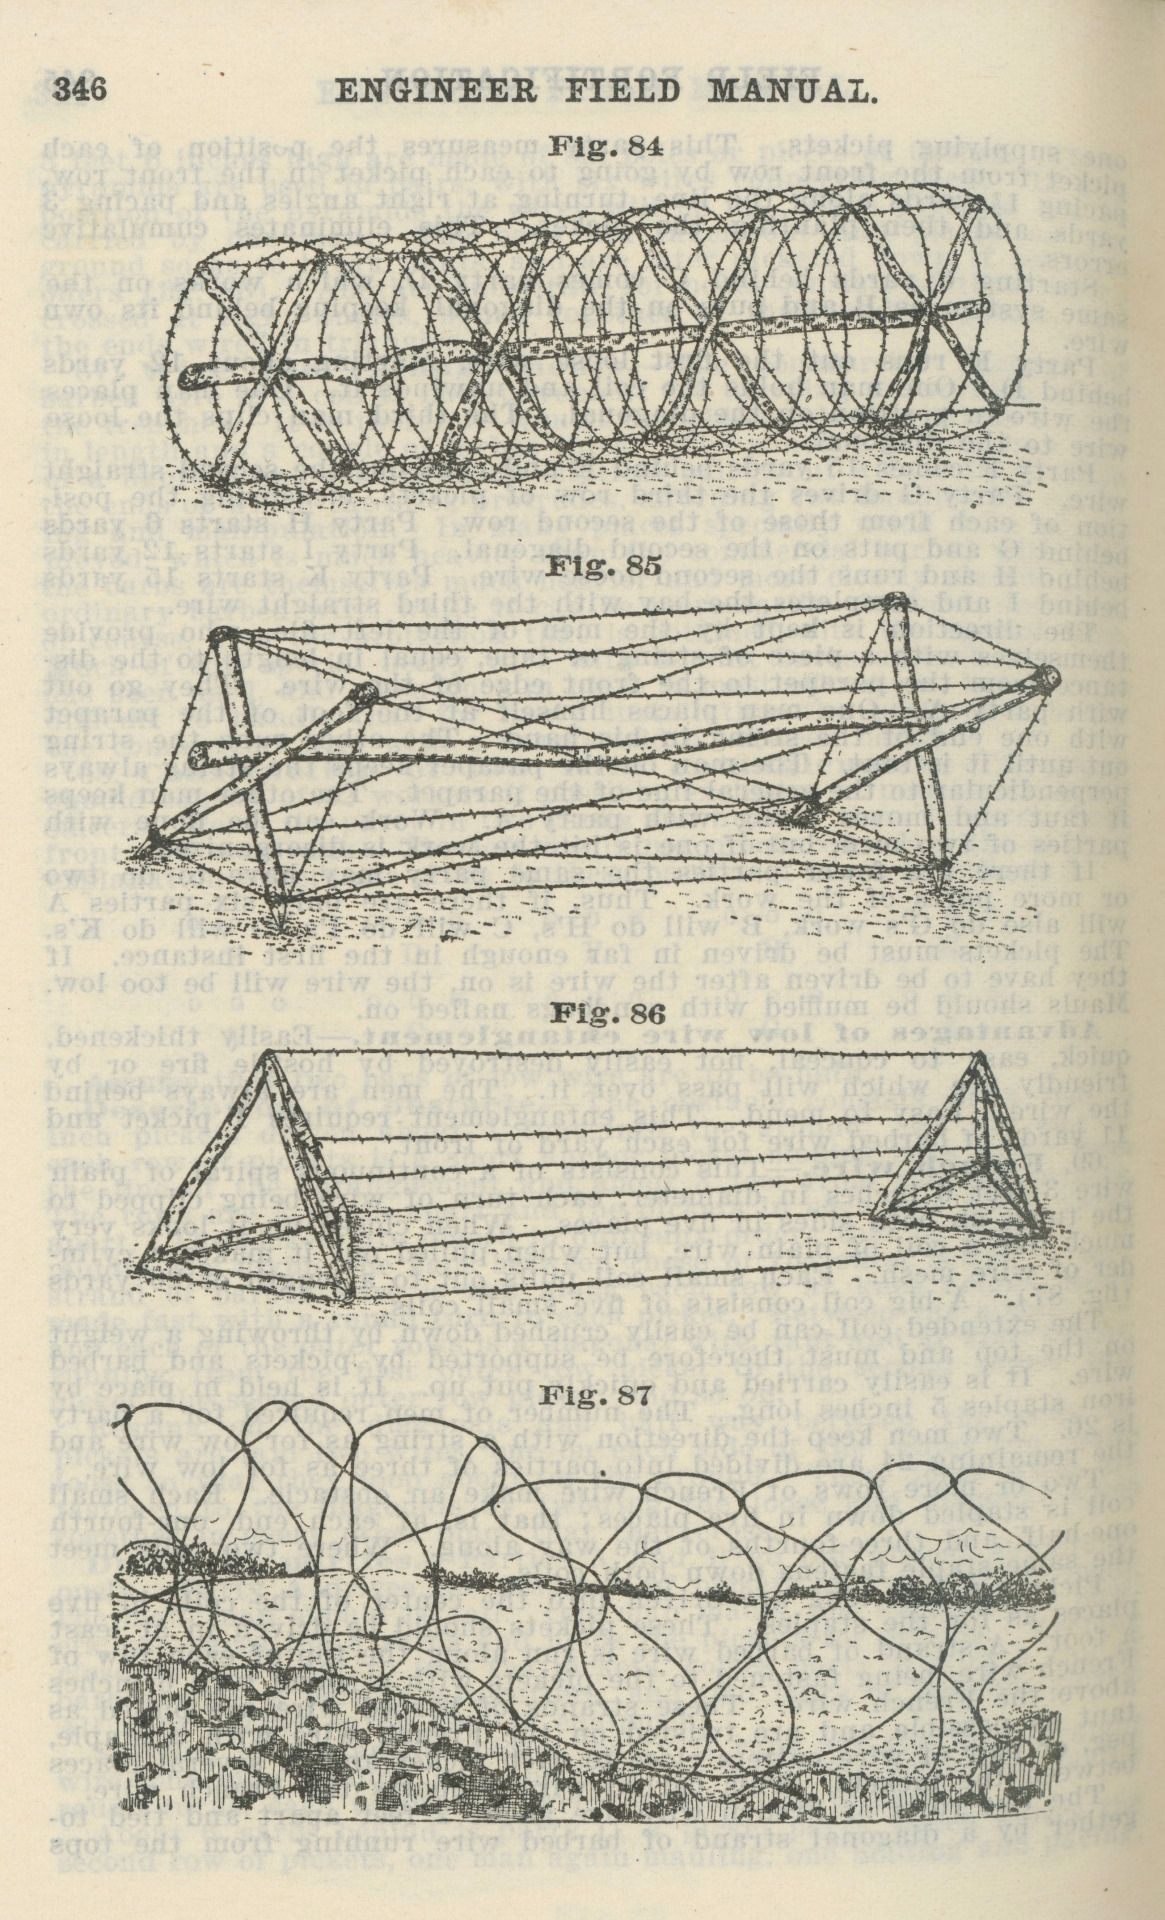 barbed wire low wire entanglements from engineer field manual pts rh pinterest com Army Field Manual 3 24 U.S. Army Field Manual 21 20